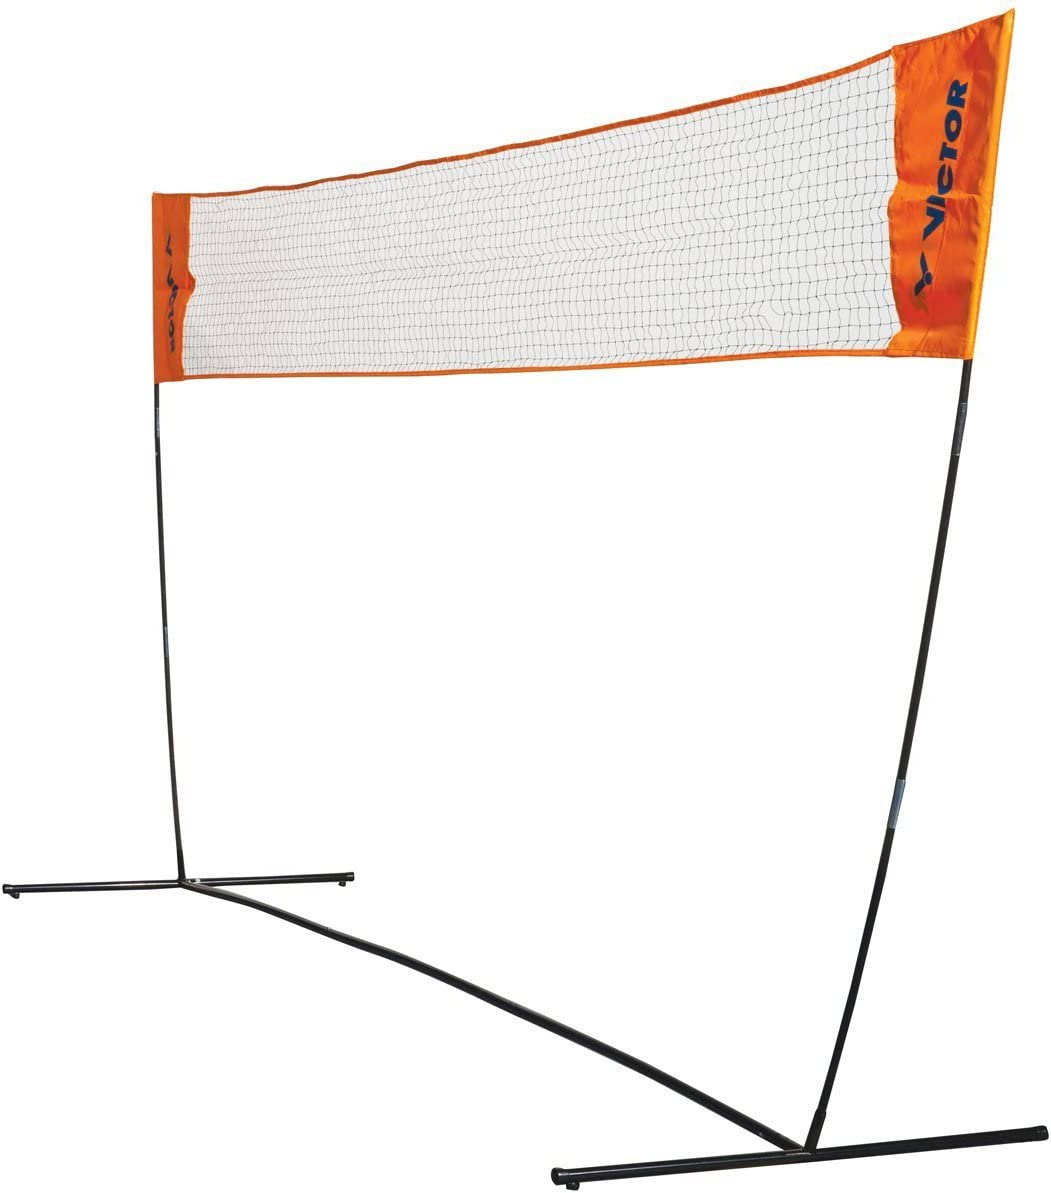 Victor Easy Net Badminton Tennis 3 5m Wide With Adjustable Height Orange Amazon Co Uk Sports Outdoors